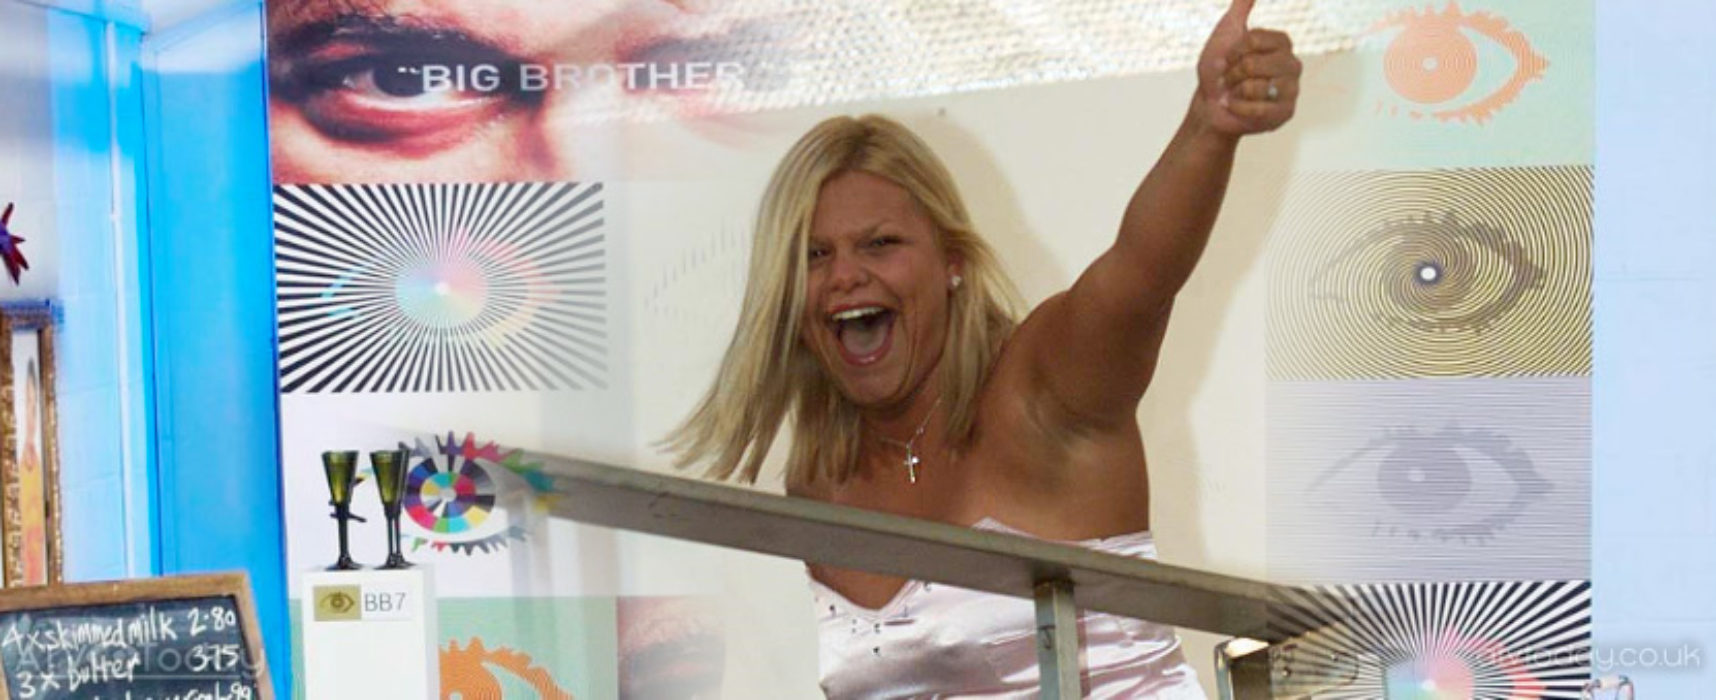 Channel 4 to reflect on the life of reality star Jade Goody a decade after her death